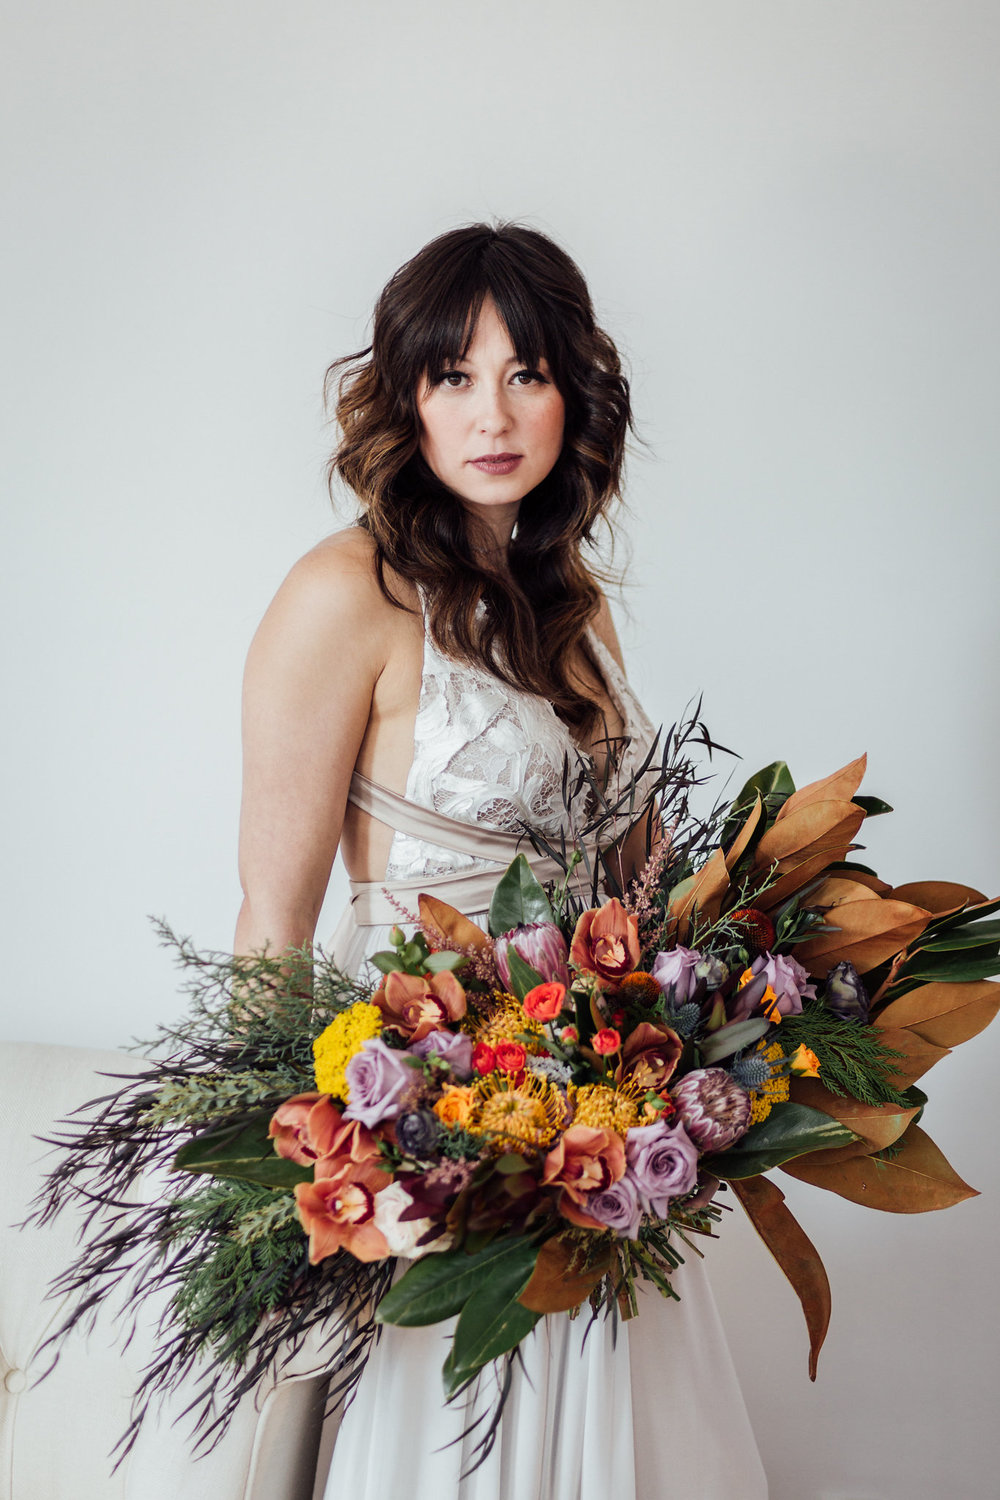 Blomma Designs - Alaska Event Design and Florals